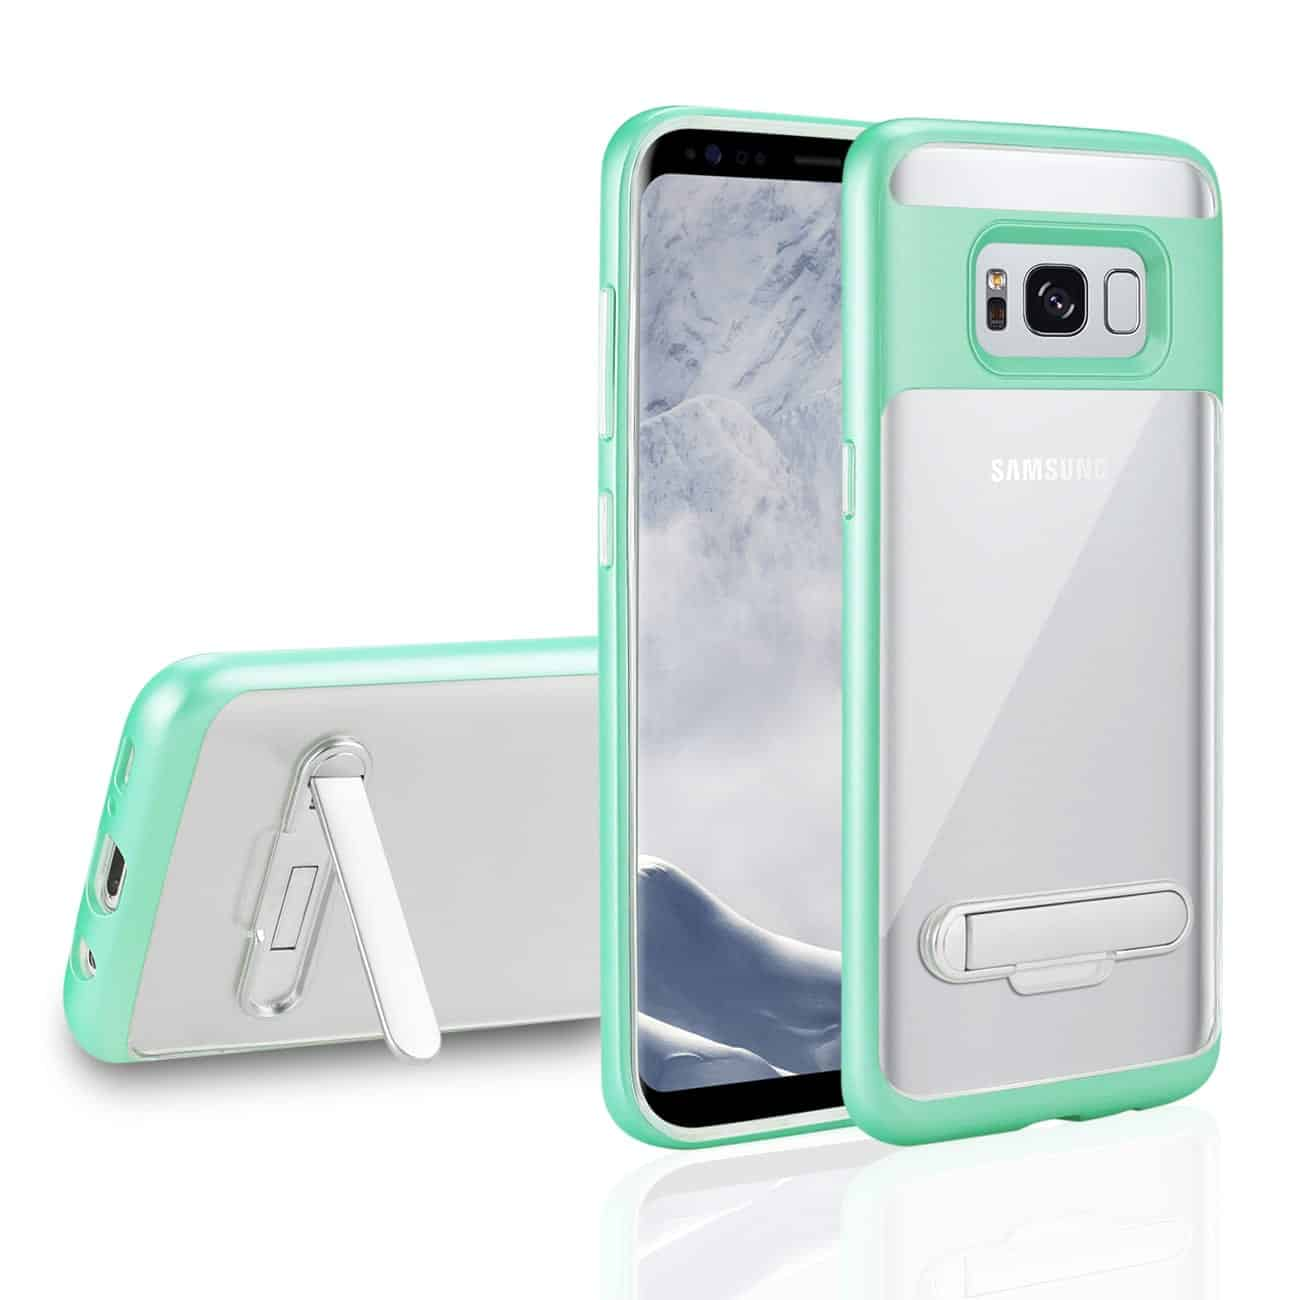 SAMSUNG GALAXY S8 EDGE/ S8 PLUS TRANSPARENT BUMPER CASE WITH KICKSTAND AND MATTE INNER FINISH IN CLEAR GREEN